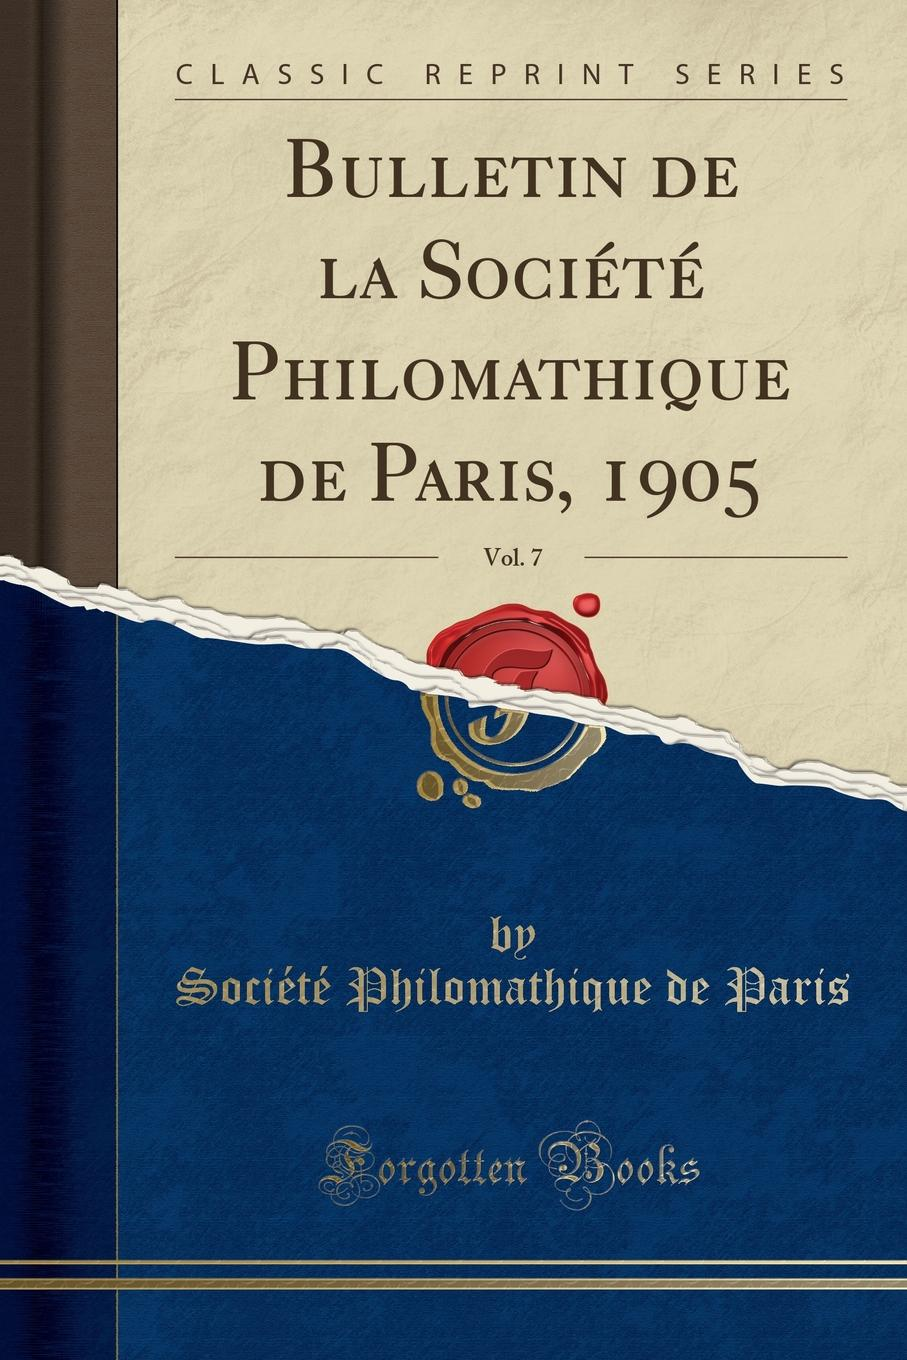 Société Philomathique de Paris Bulletin de la Societe Philomathique de Paris, 1905, Vol. 7 (Classic Reprint)